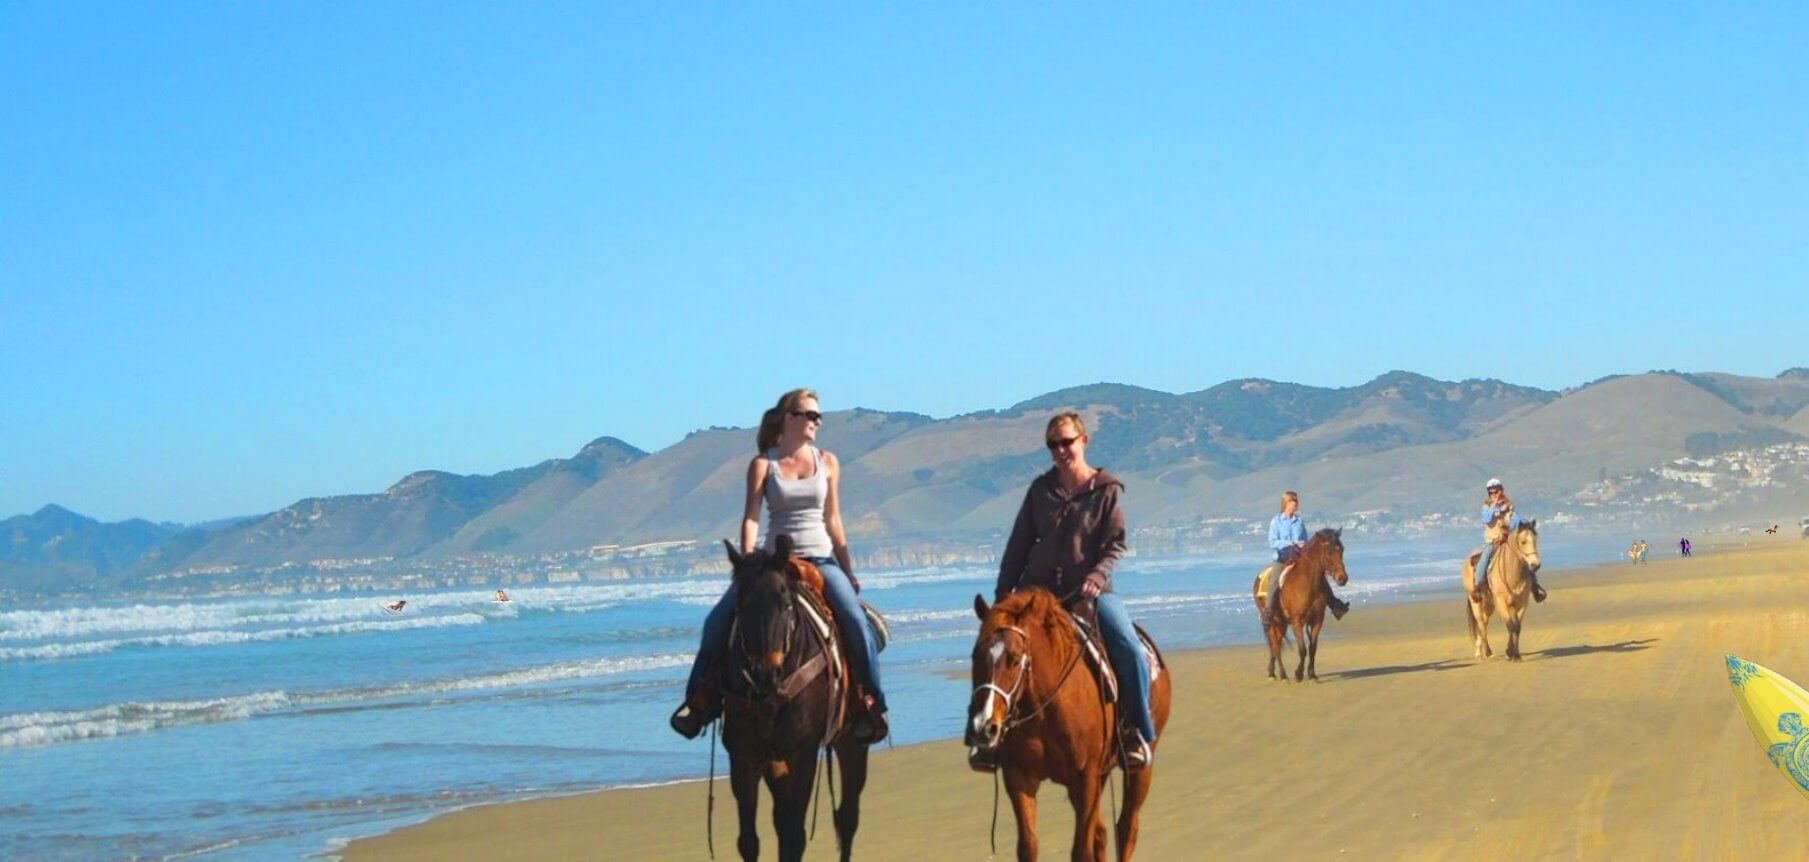 Exciting-Horseback-Rides-on-the-Beach